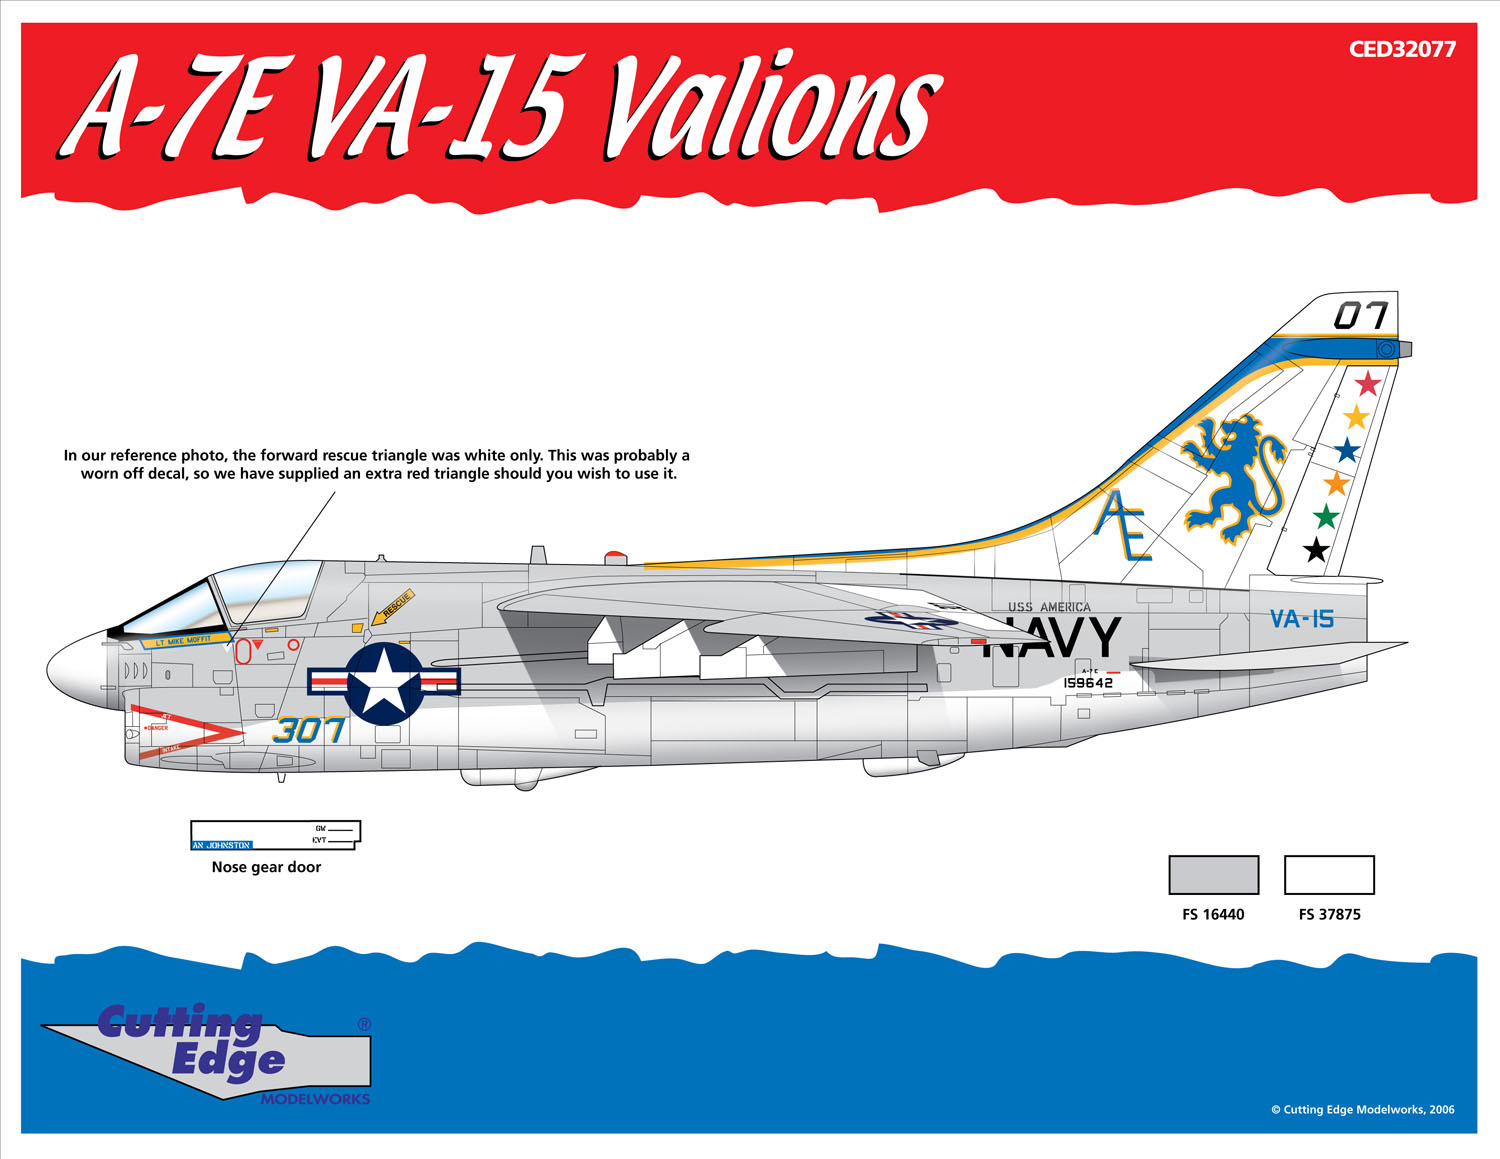 STICKER USN VA 154 Valion